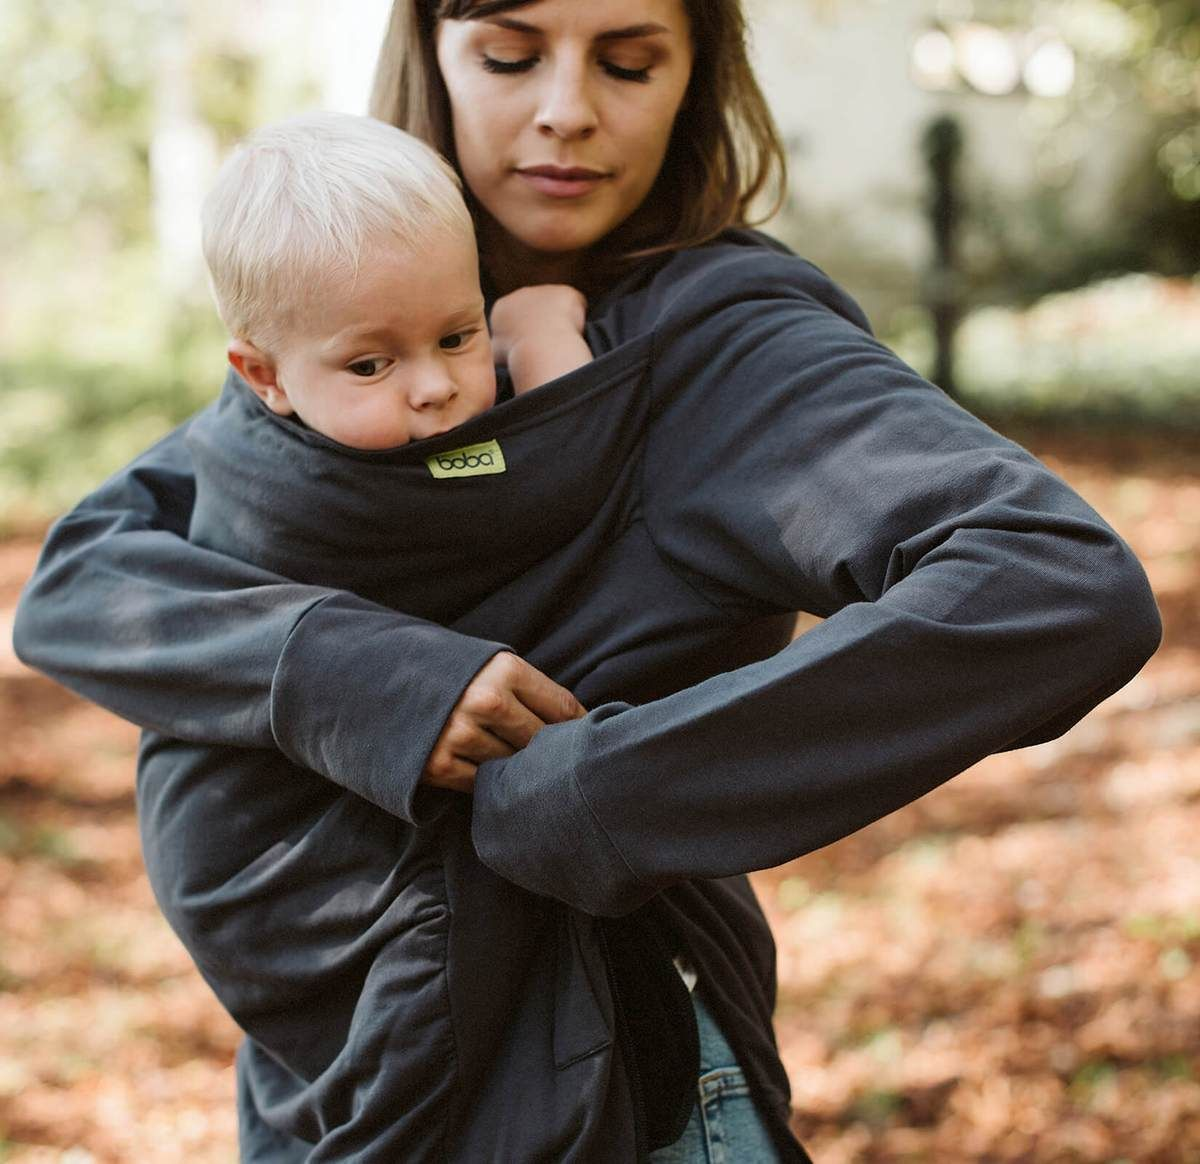 A Boba Hoodie Will Keep You And Your Baby Warm When Worn Over Your